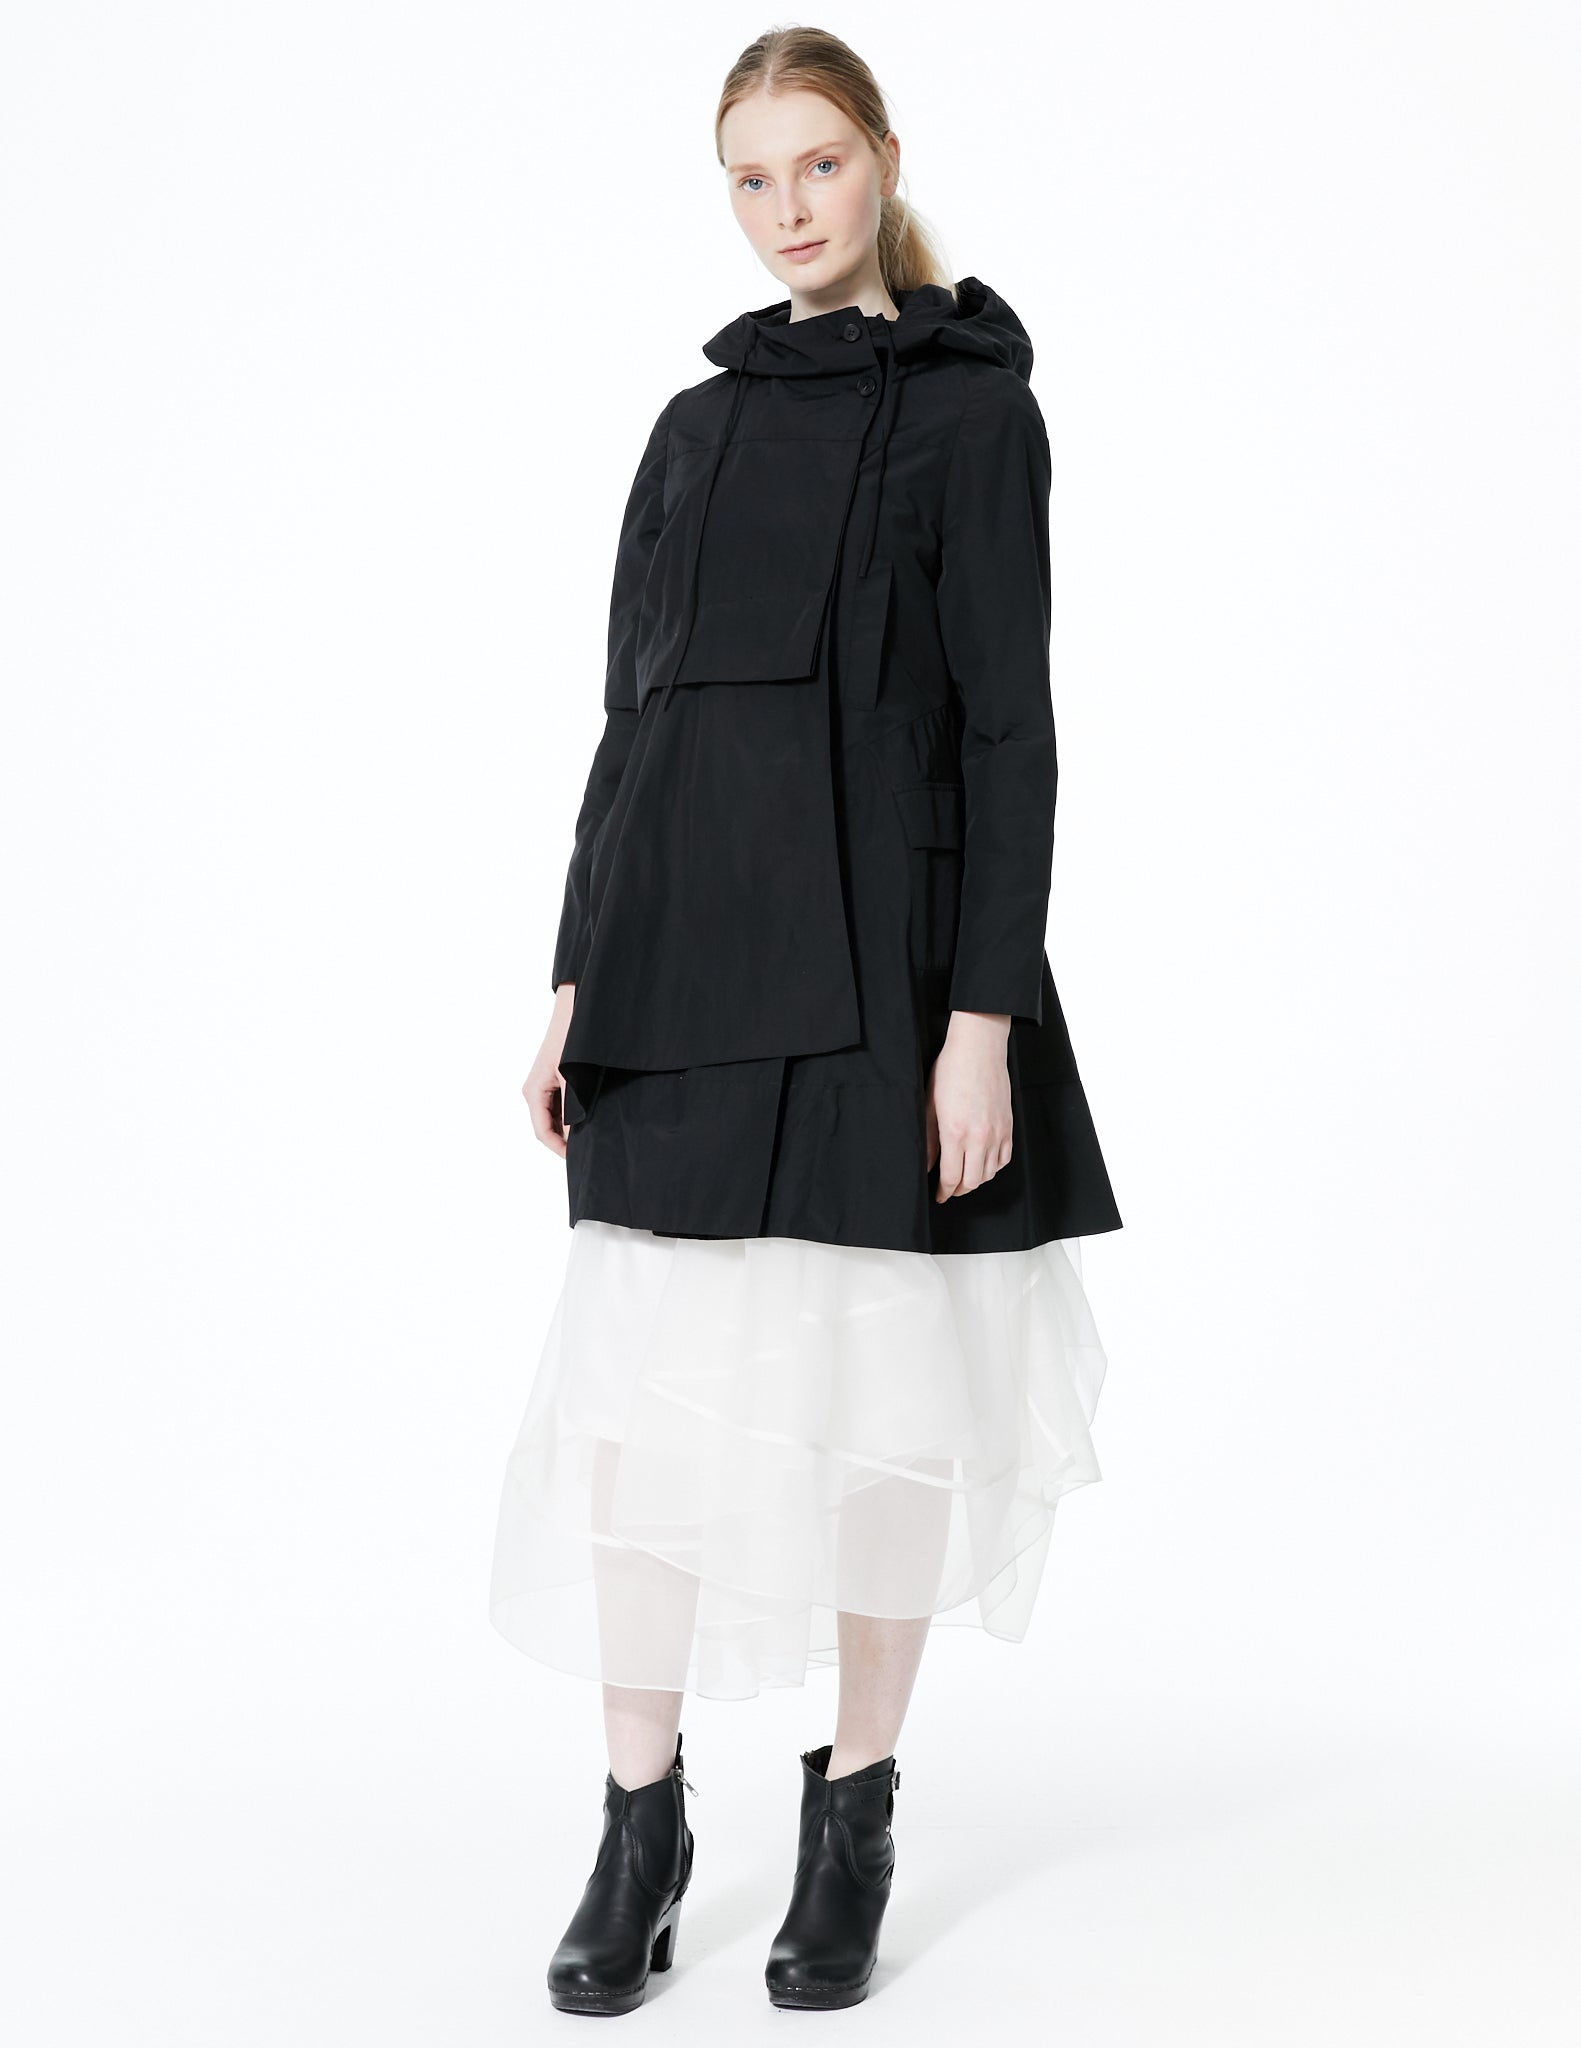 raincoat with offset button closure and front drape detail